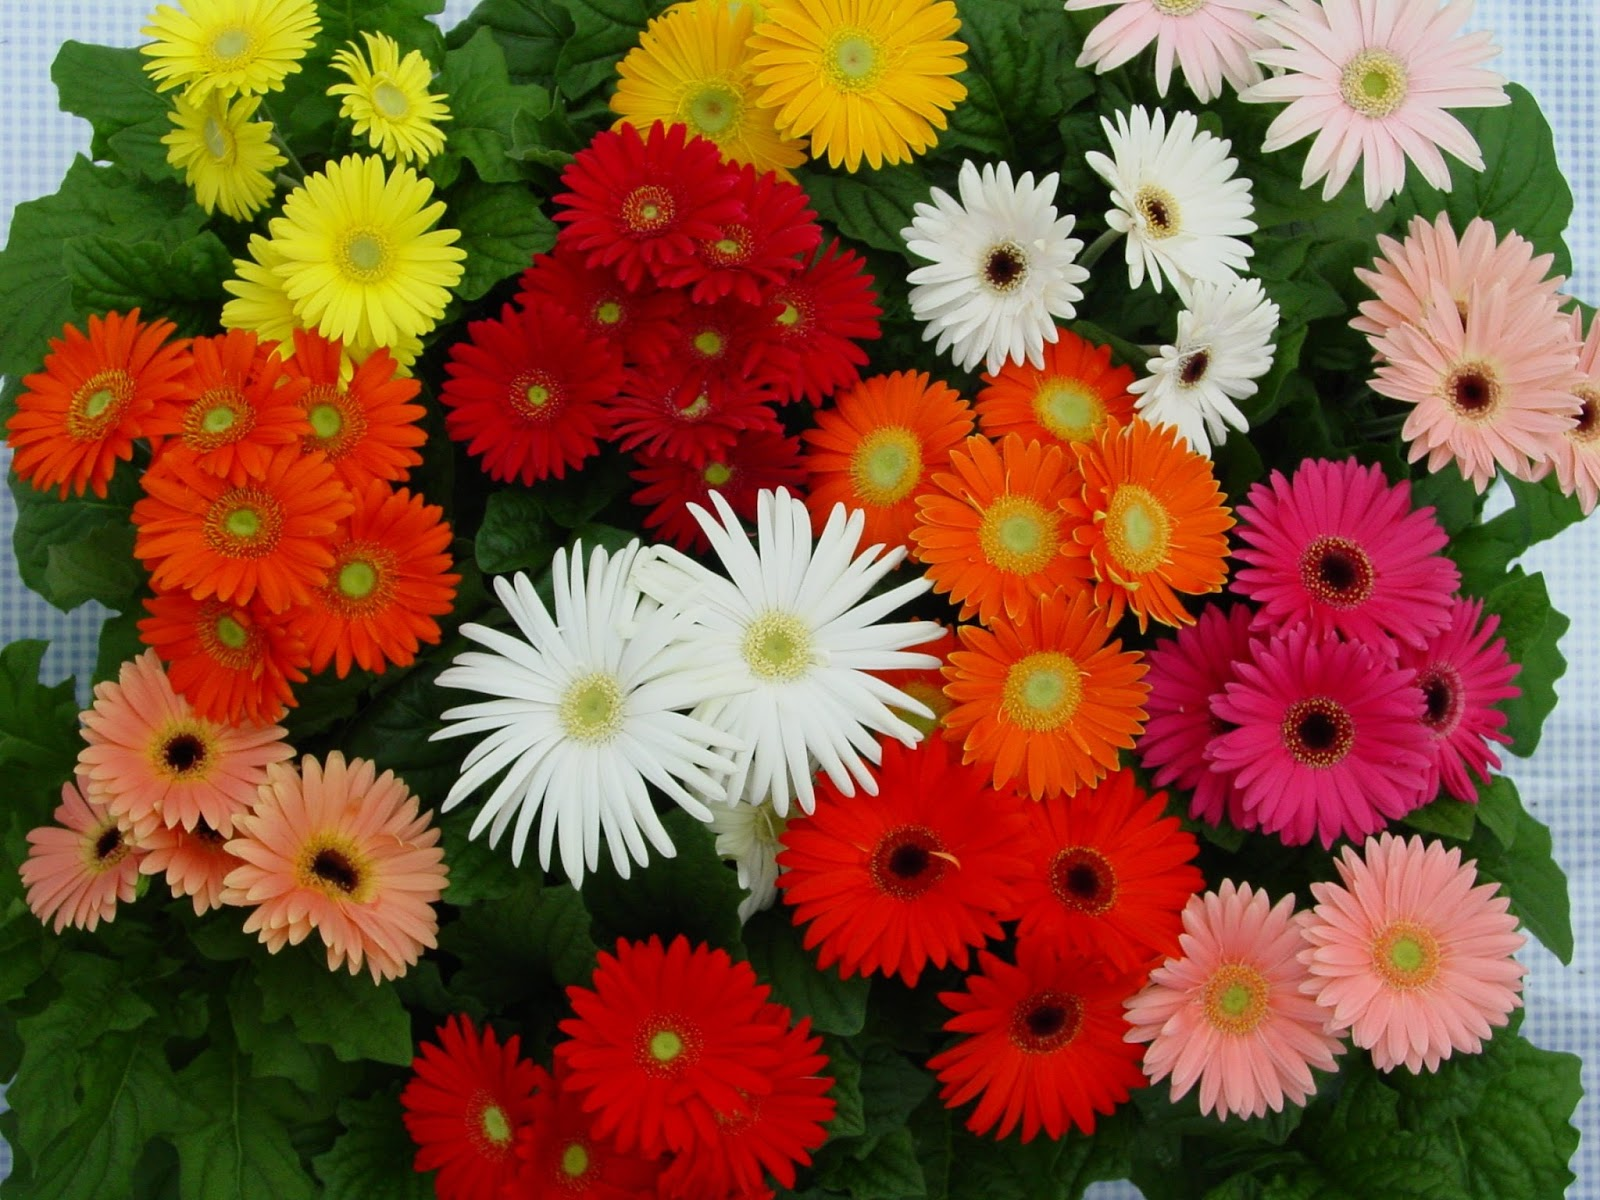 Gerbera Flower Bengali Meaning Romantic Flowers: Gerbera Daisy Flower